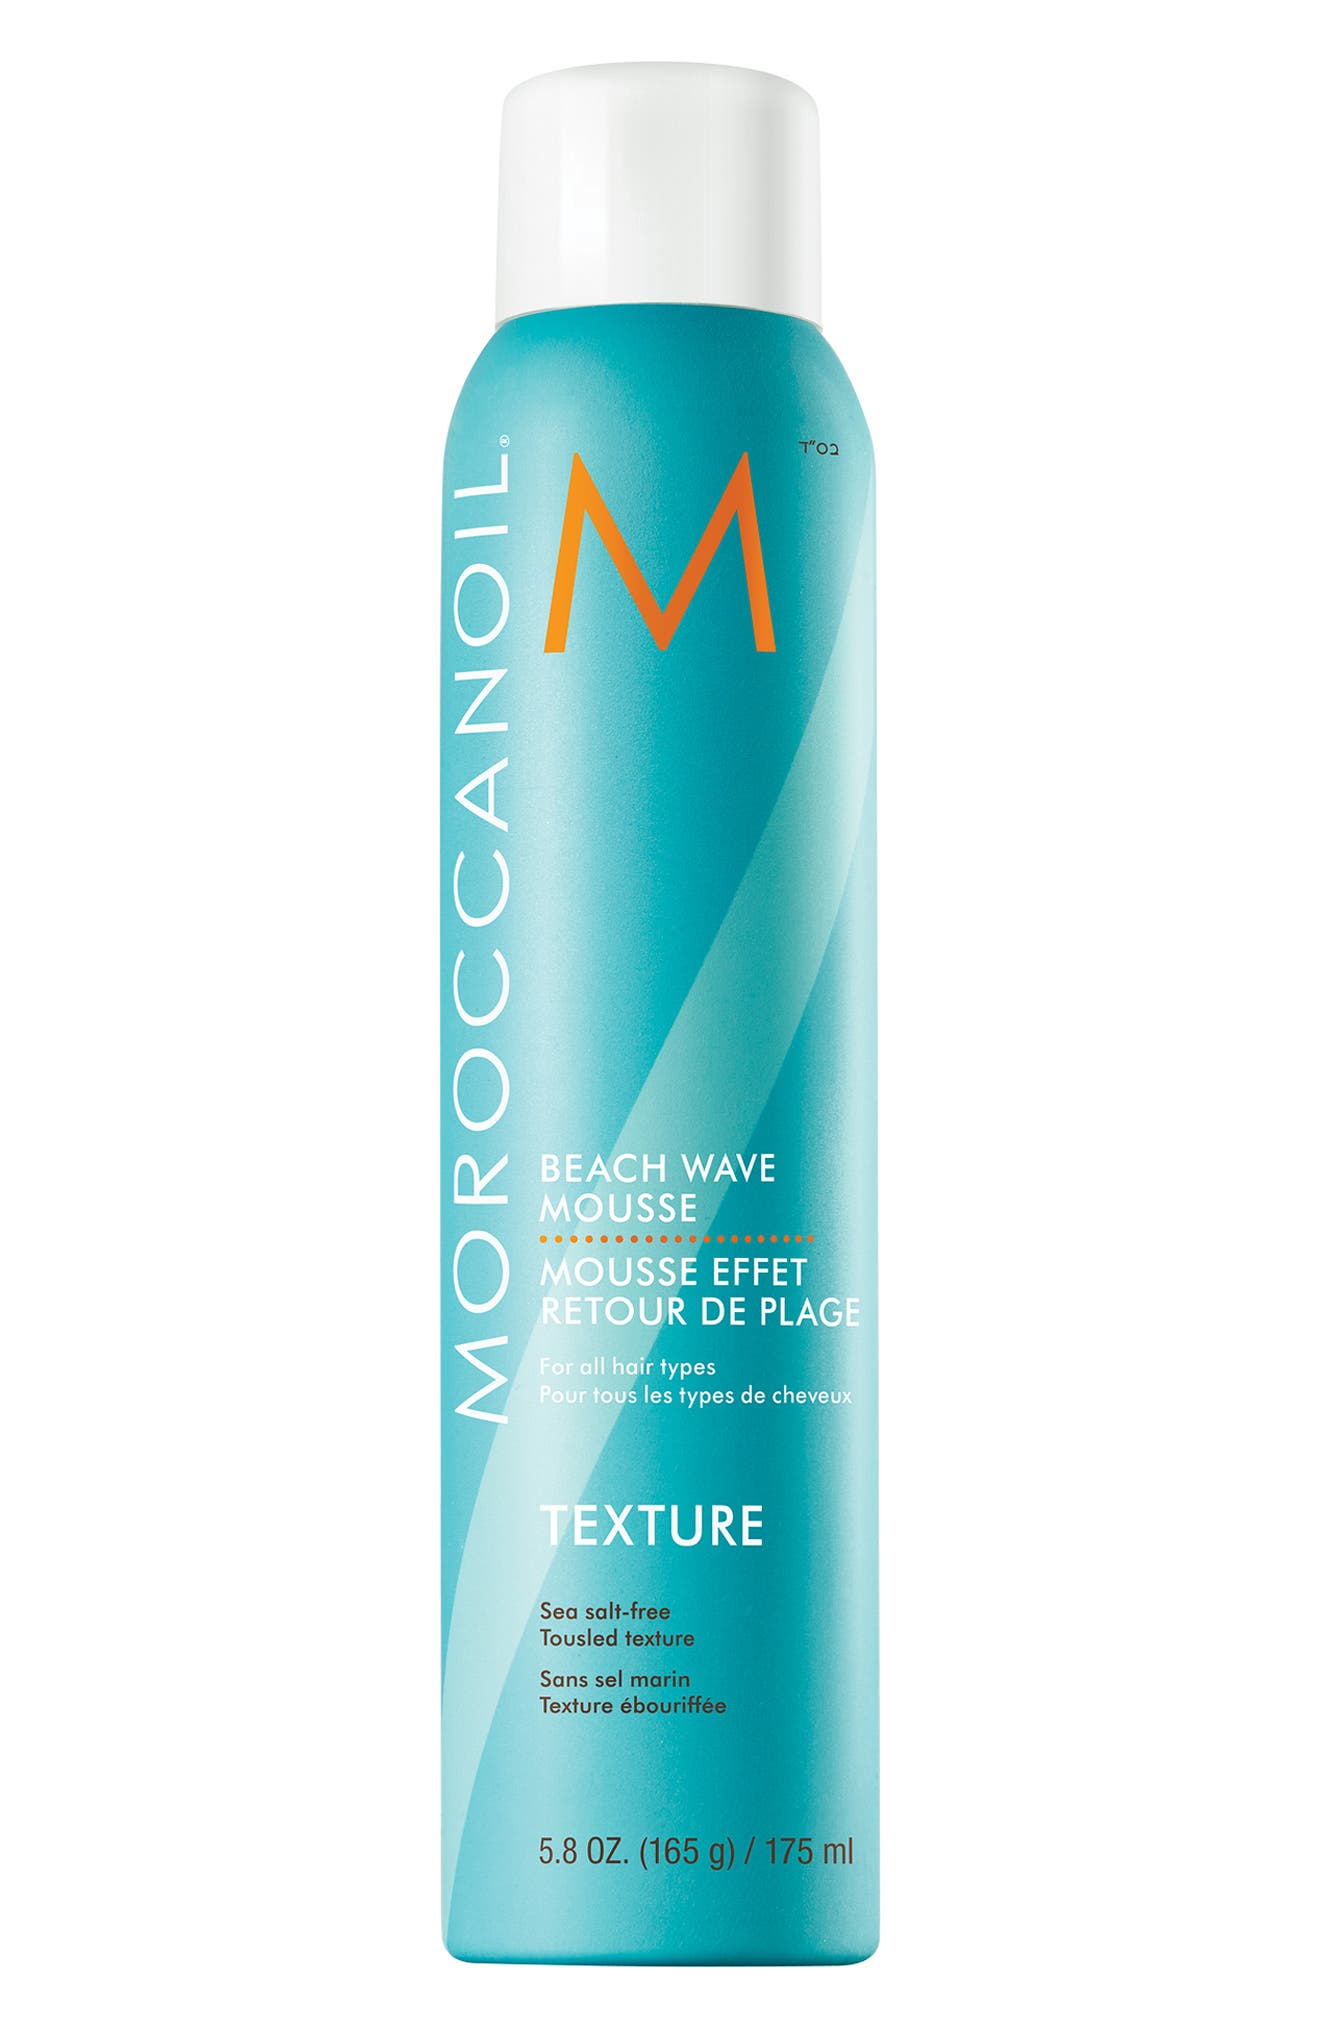 Beach Wave Mousse,                             Main thumbnail 1, color,                             No Color